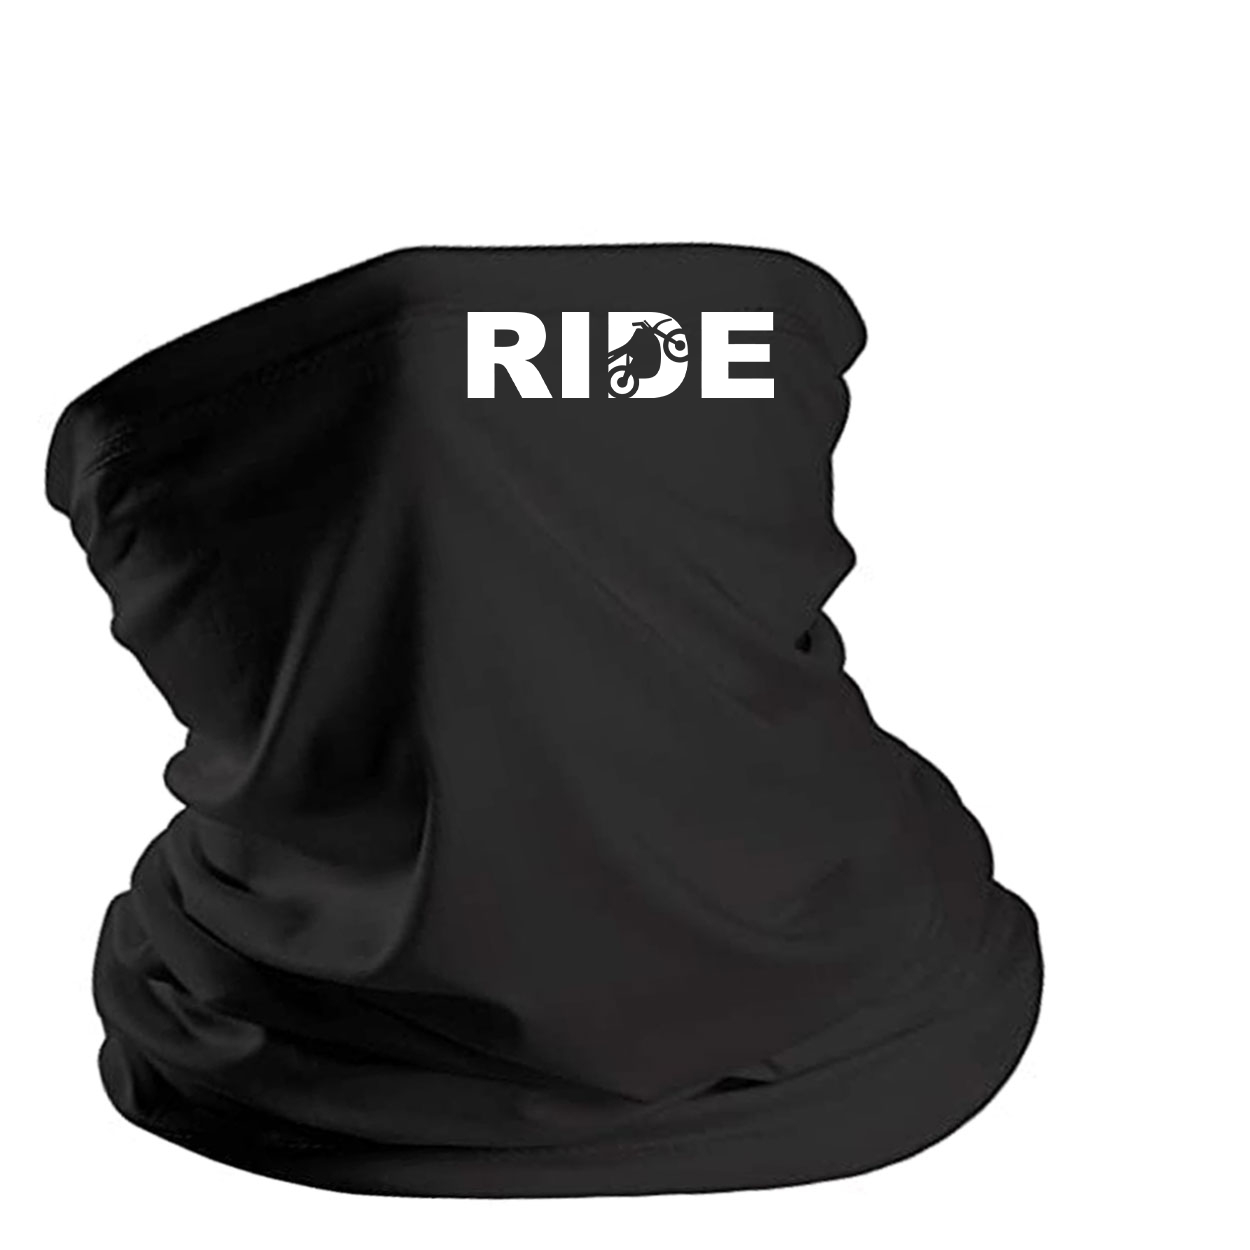 Ride Moto Logo Night Out Lightweight Neck Gaiter Face Mask Black (White Logo)